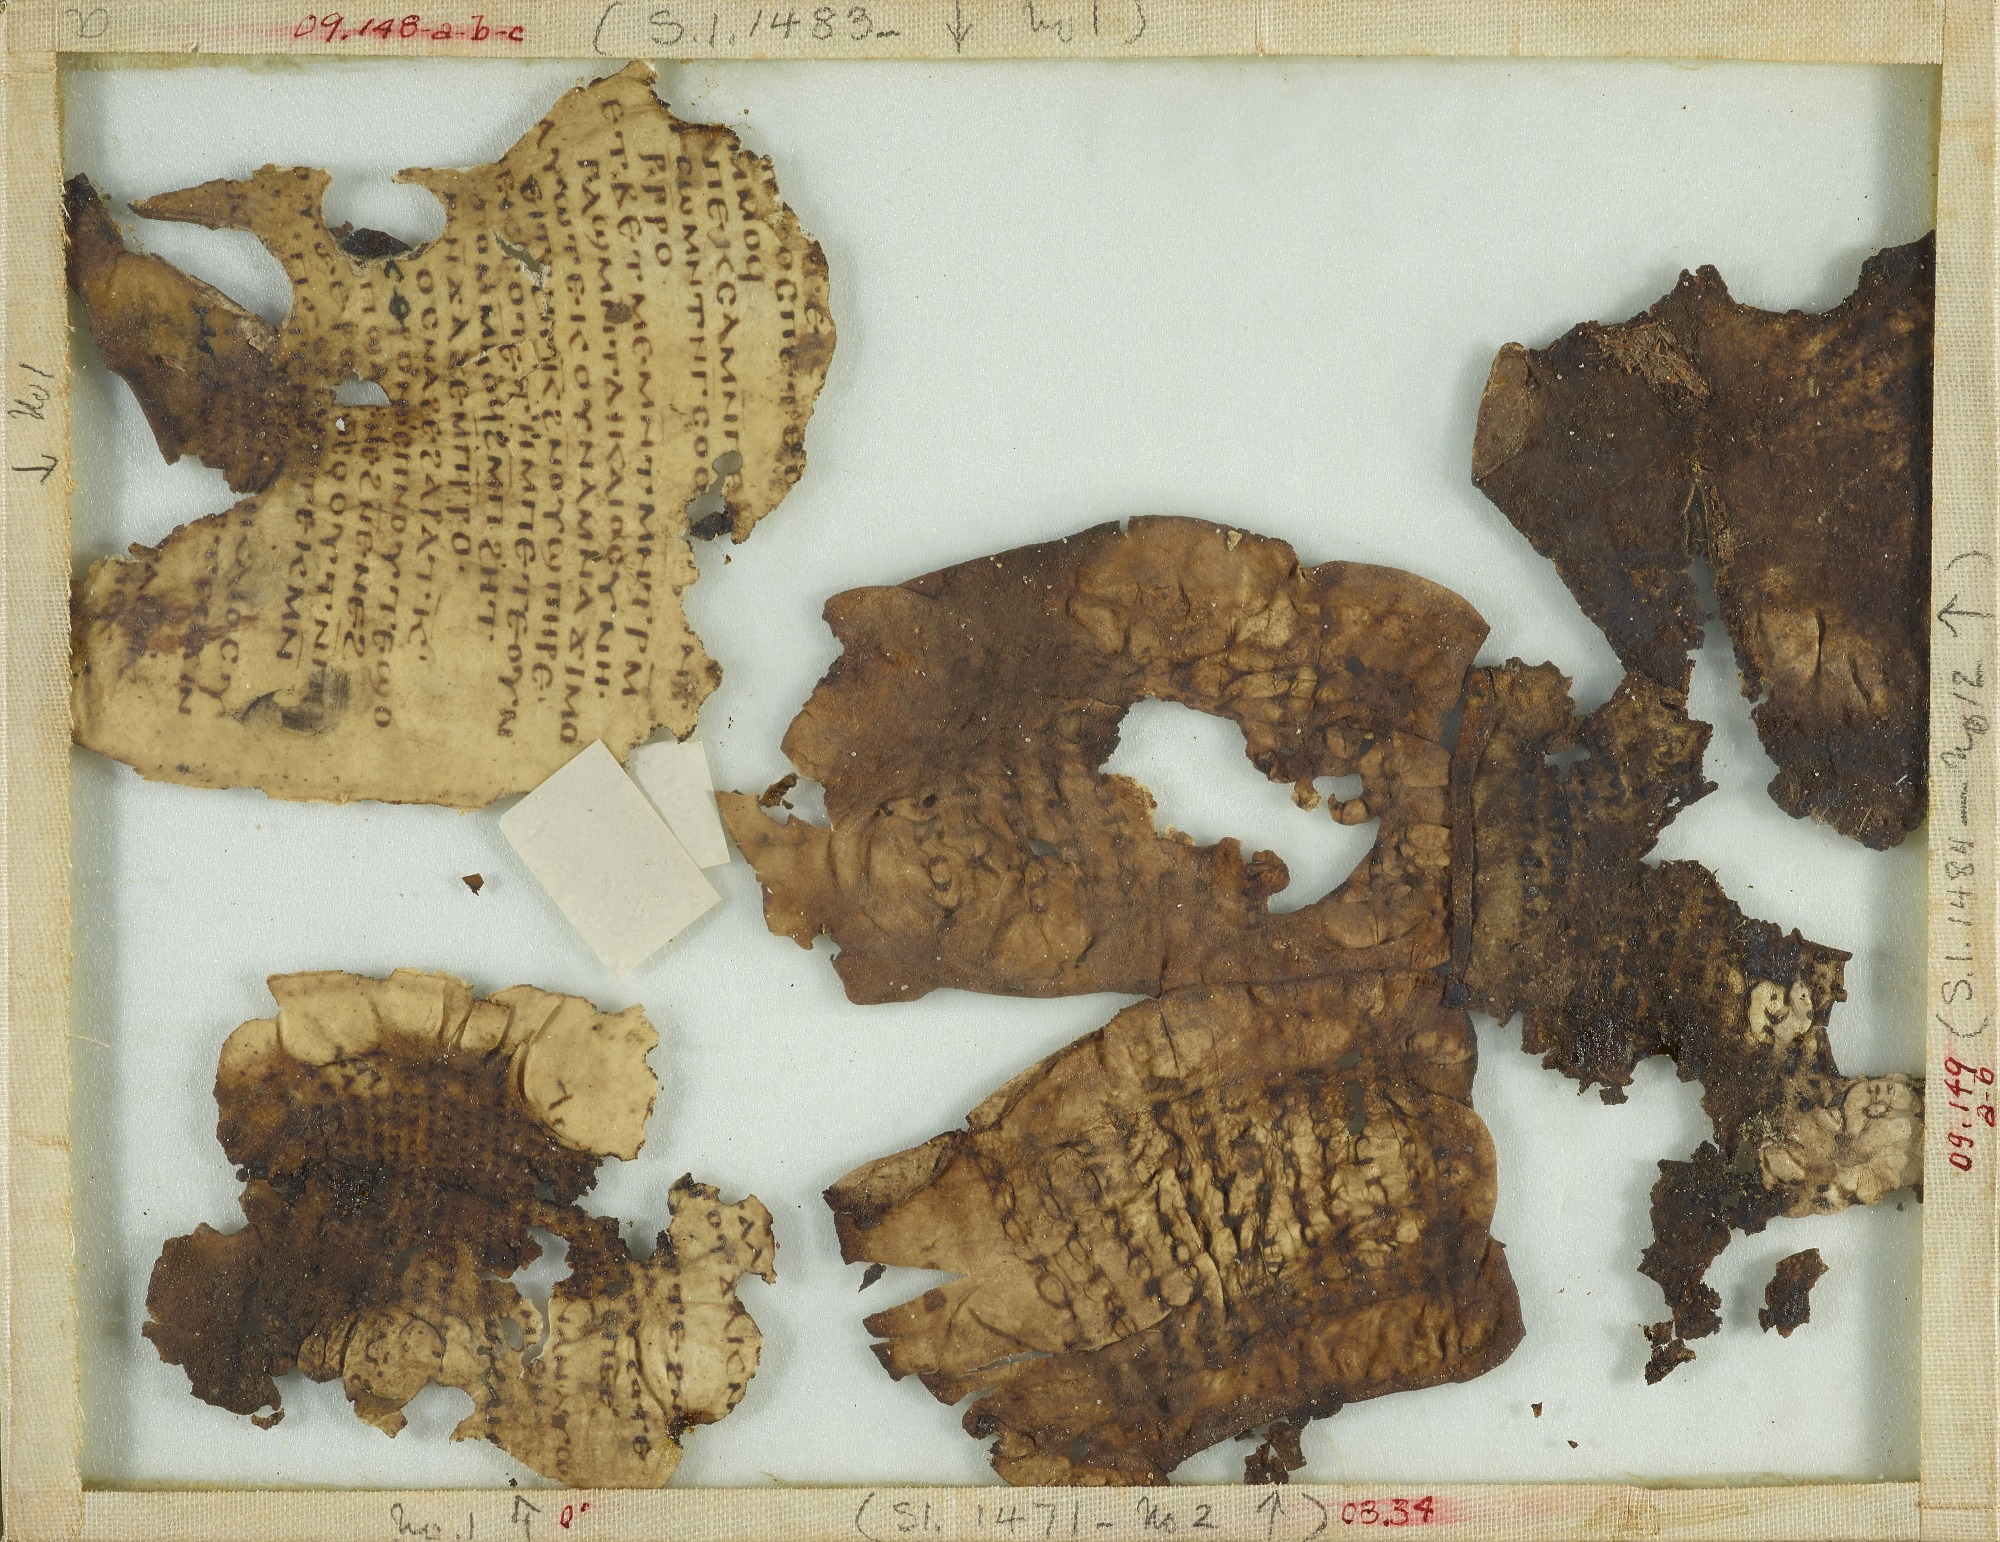 Small portion of the Gospel of Matthew